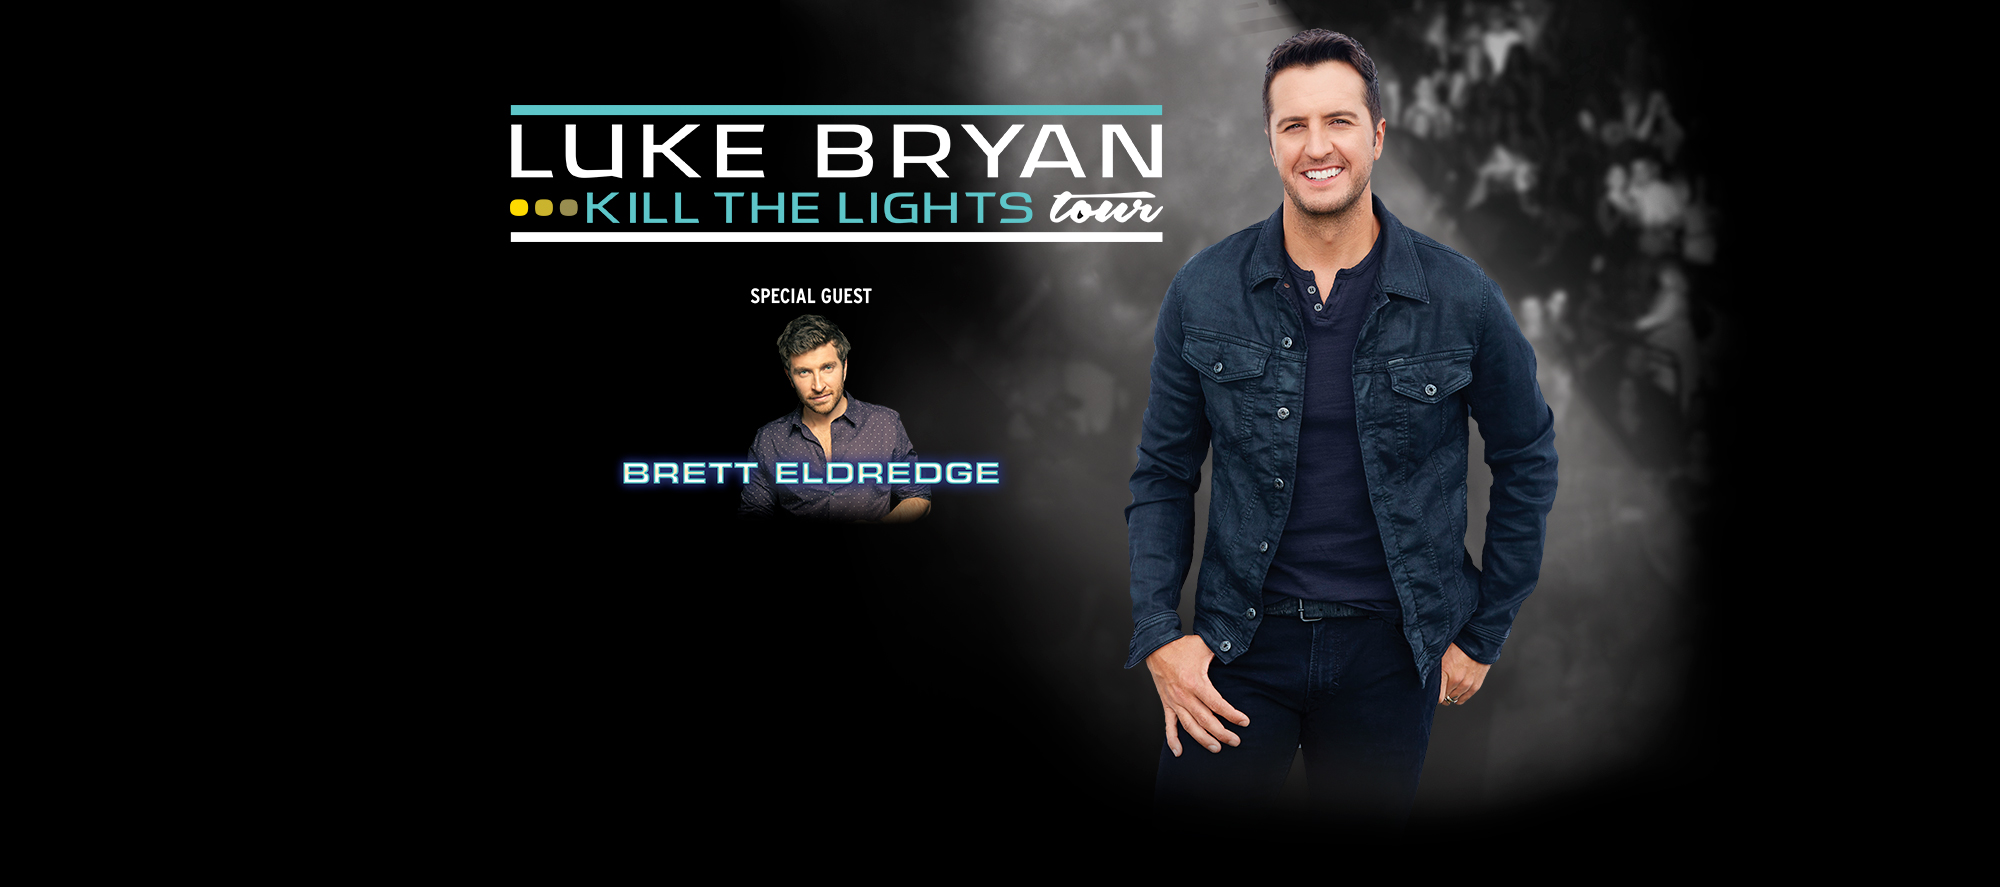 Luke Bryan Past Tour Dates